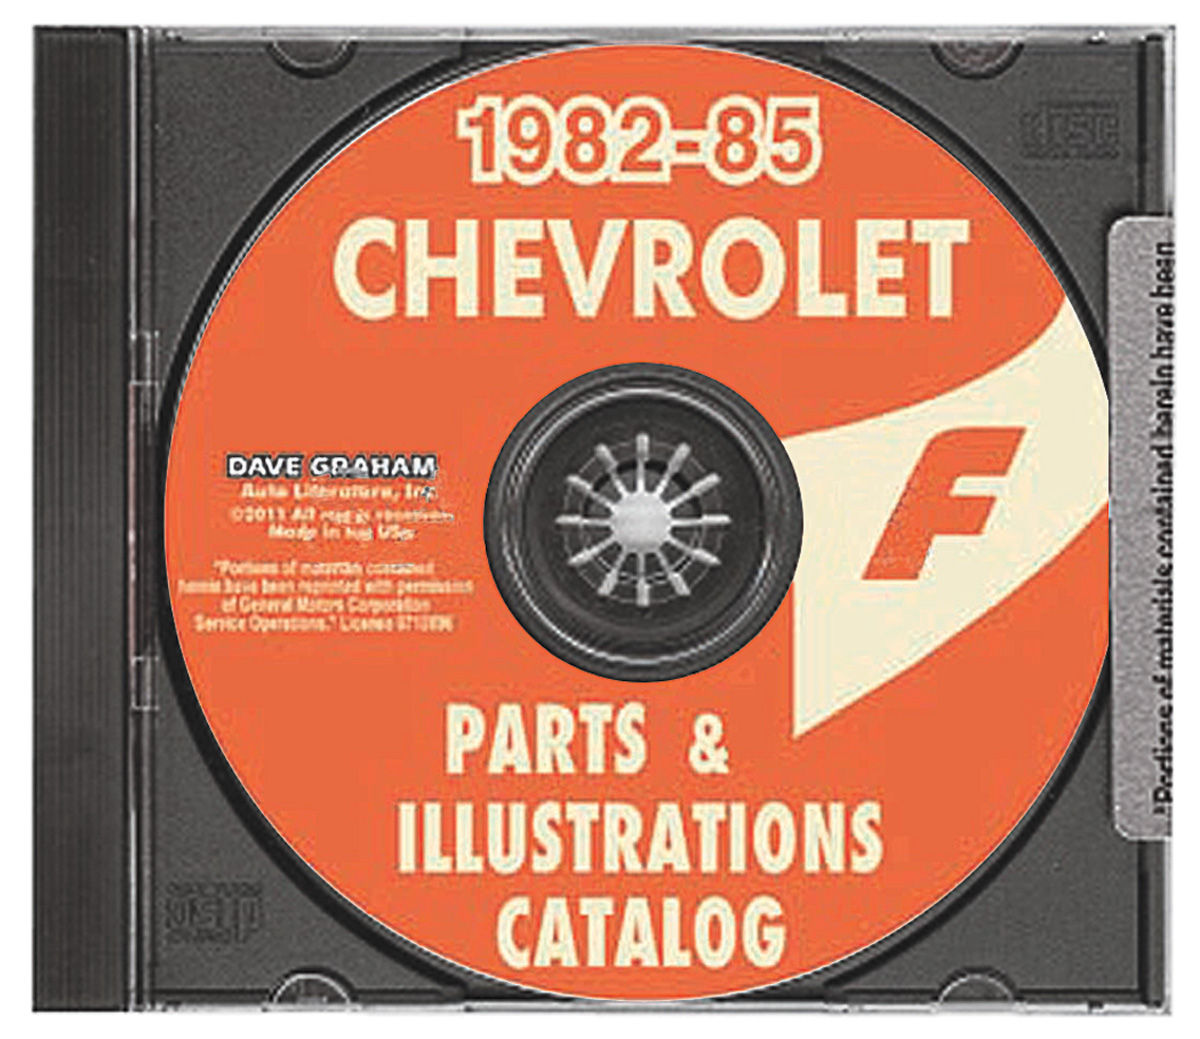 General Motors Parts & Accessories Guide, CD-ROM, 1982-85 Chevrolet